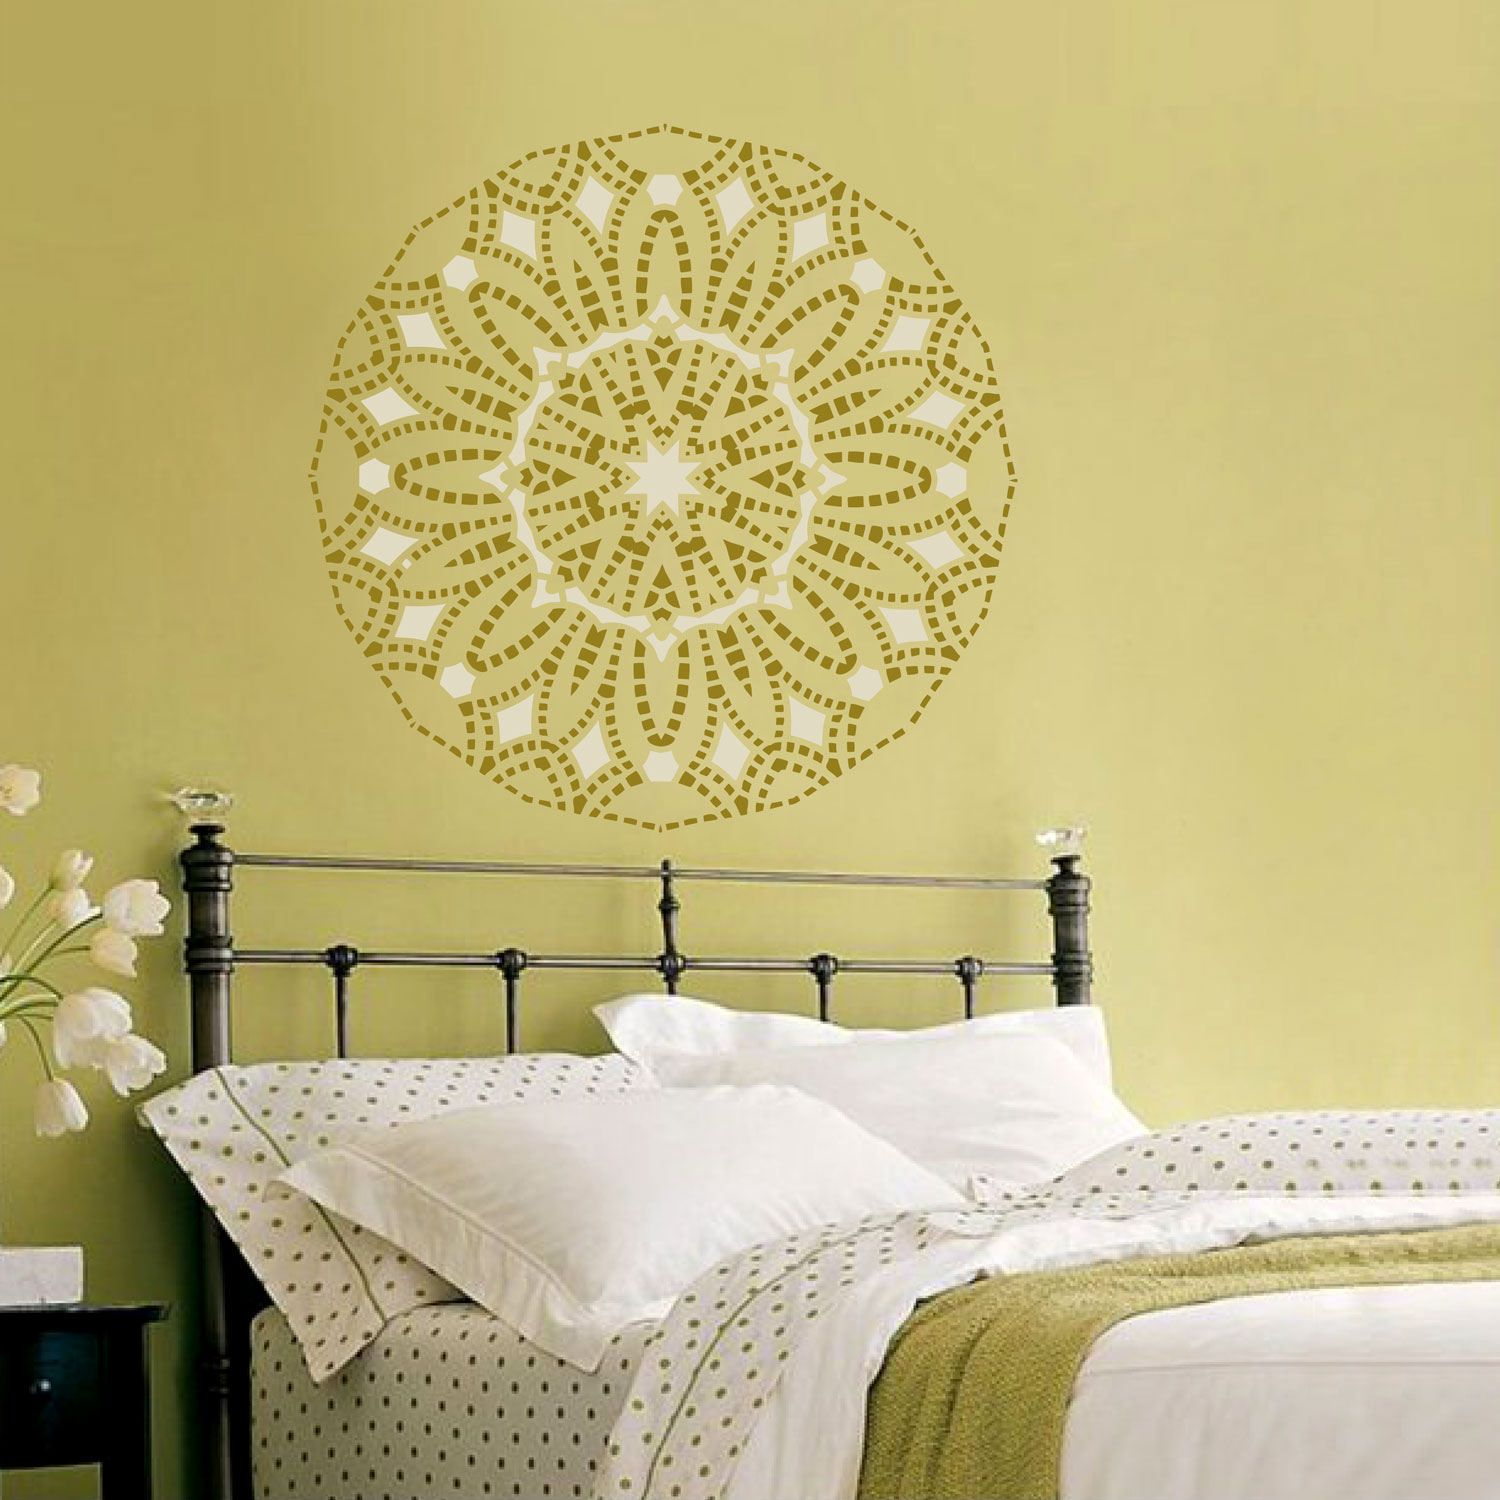 Wall stencil medallion mandala pattern for diy geometric mandala wall stencil medallion mandala pattern for diy geometric mandala stencil decorative stencils mandala wall art yoga amipublicfo Images